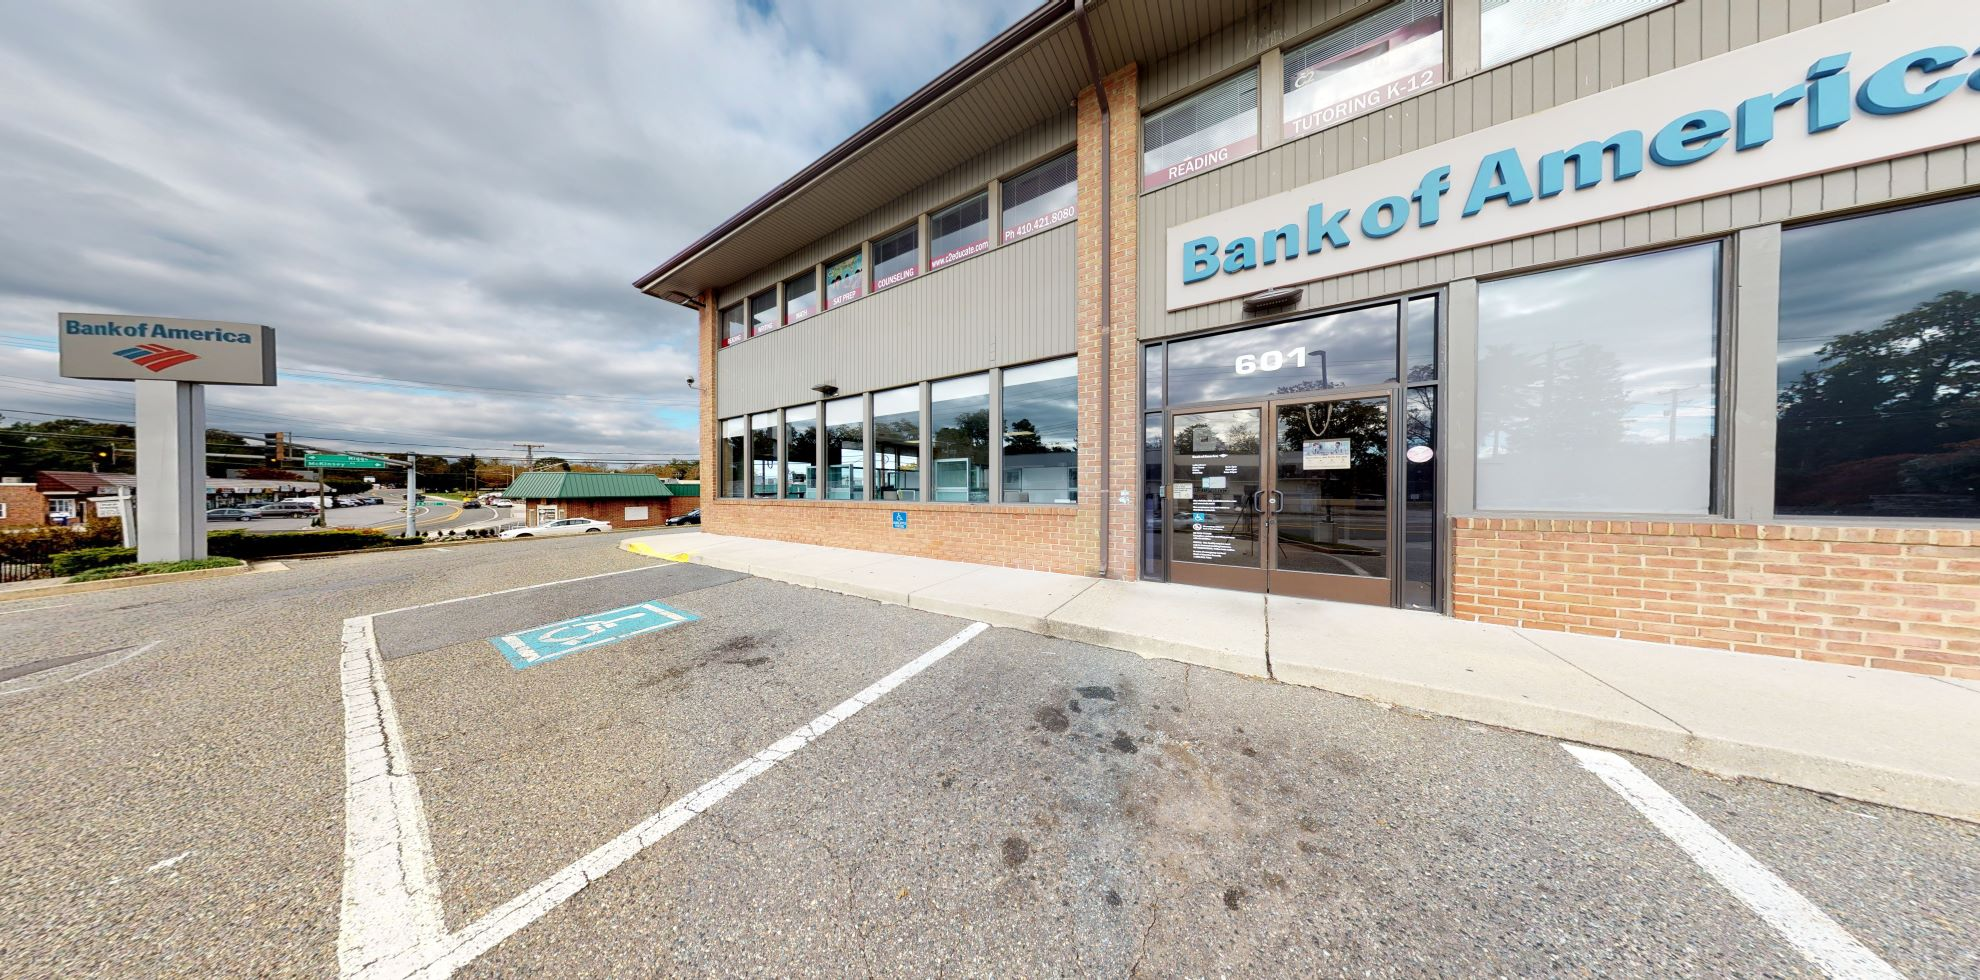 Bank of America financial center with drive-thru ATM and teller | 601 Baltimore Annapolis Blvd, Severna Park, MD 21146